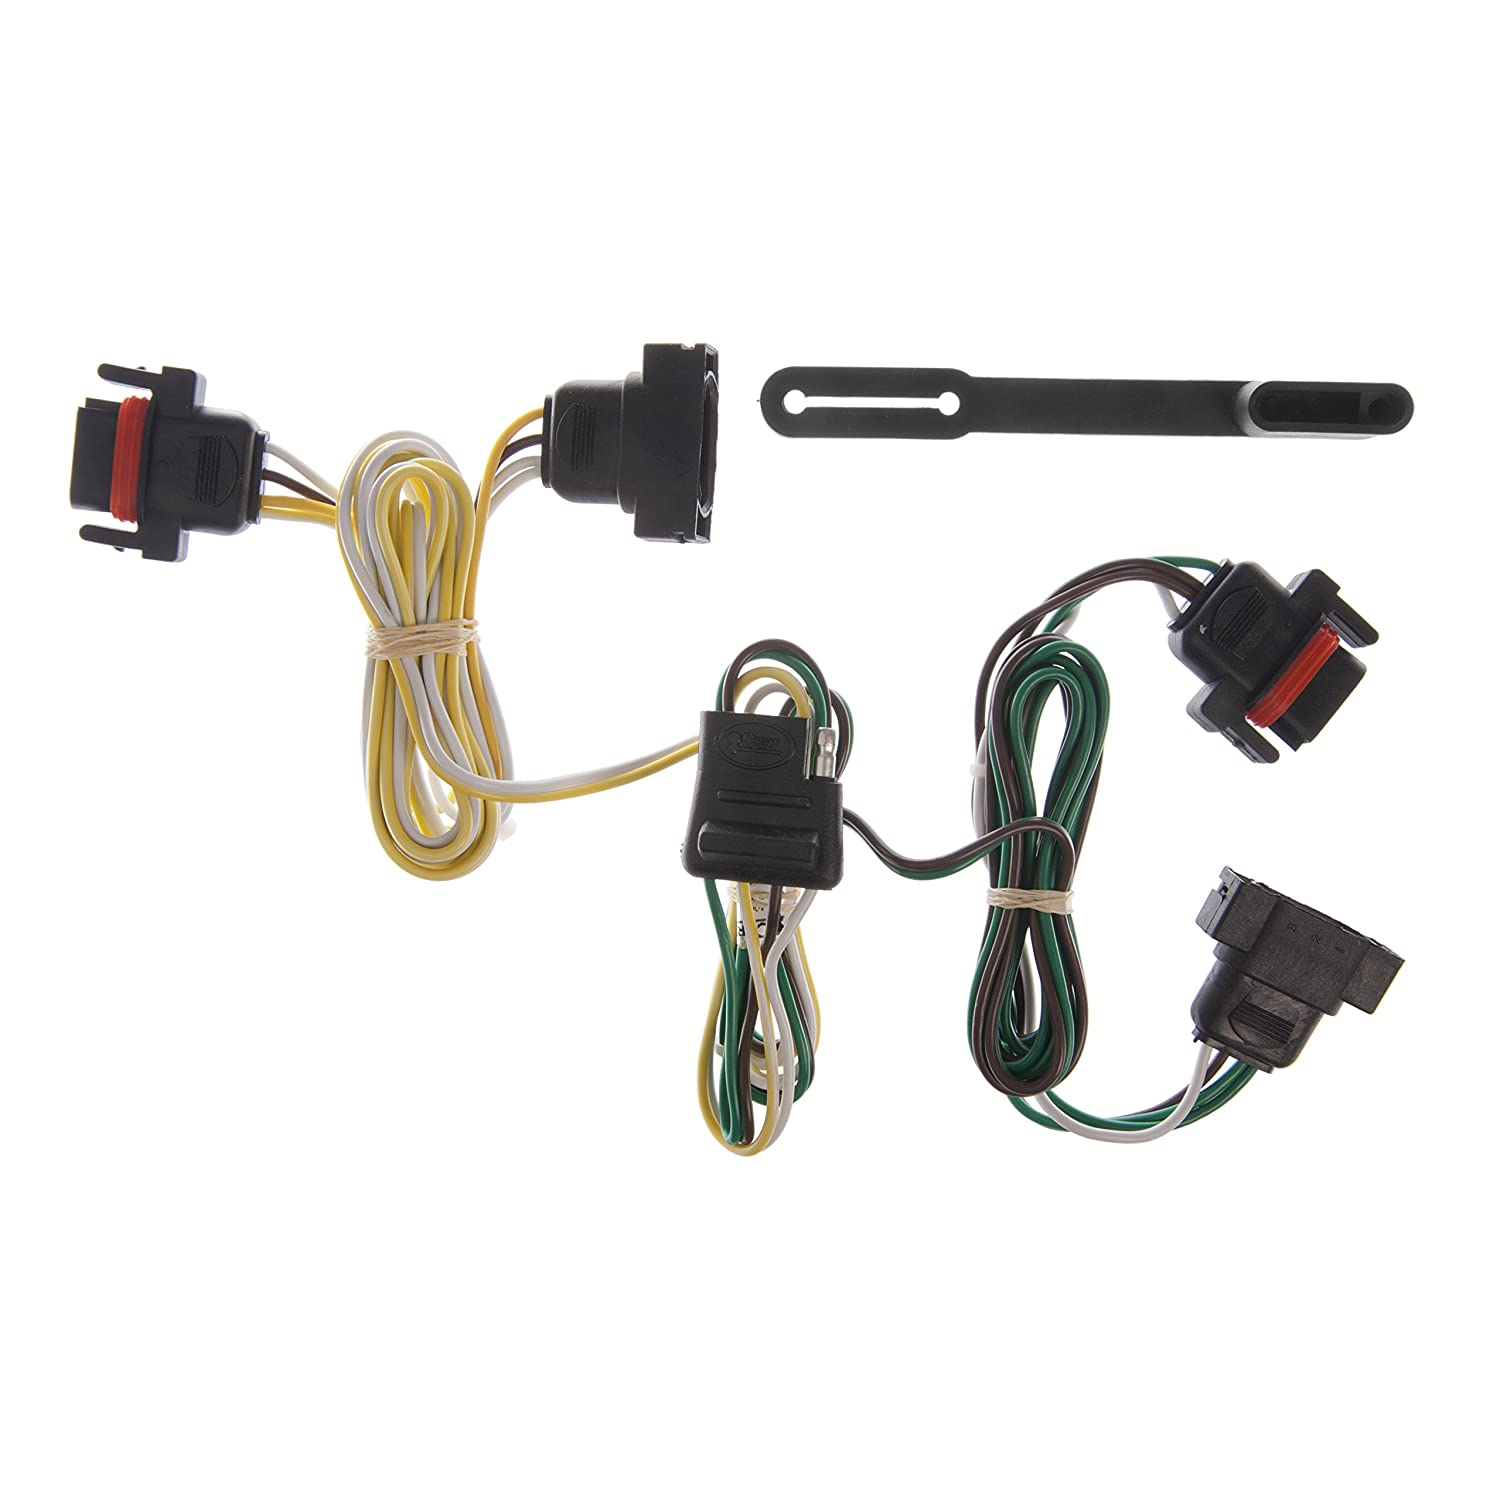 Home Trailer Hitches Hitch Wiring Curt Trailer Wiring Adapters 6way